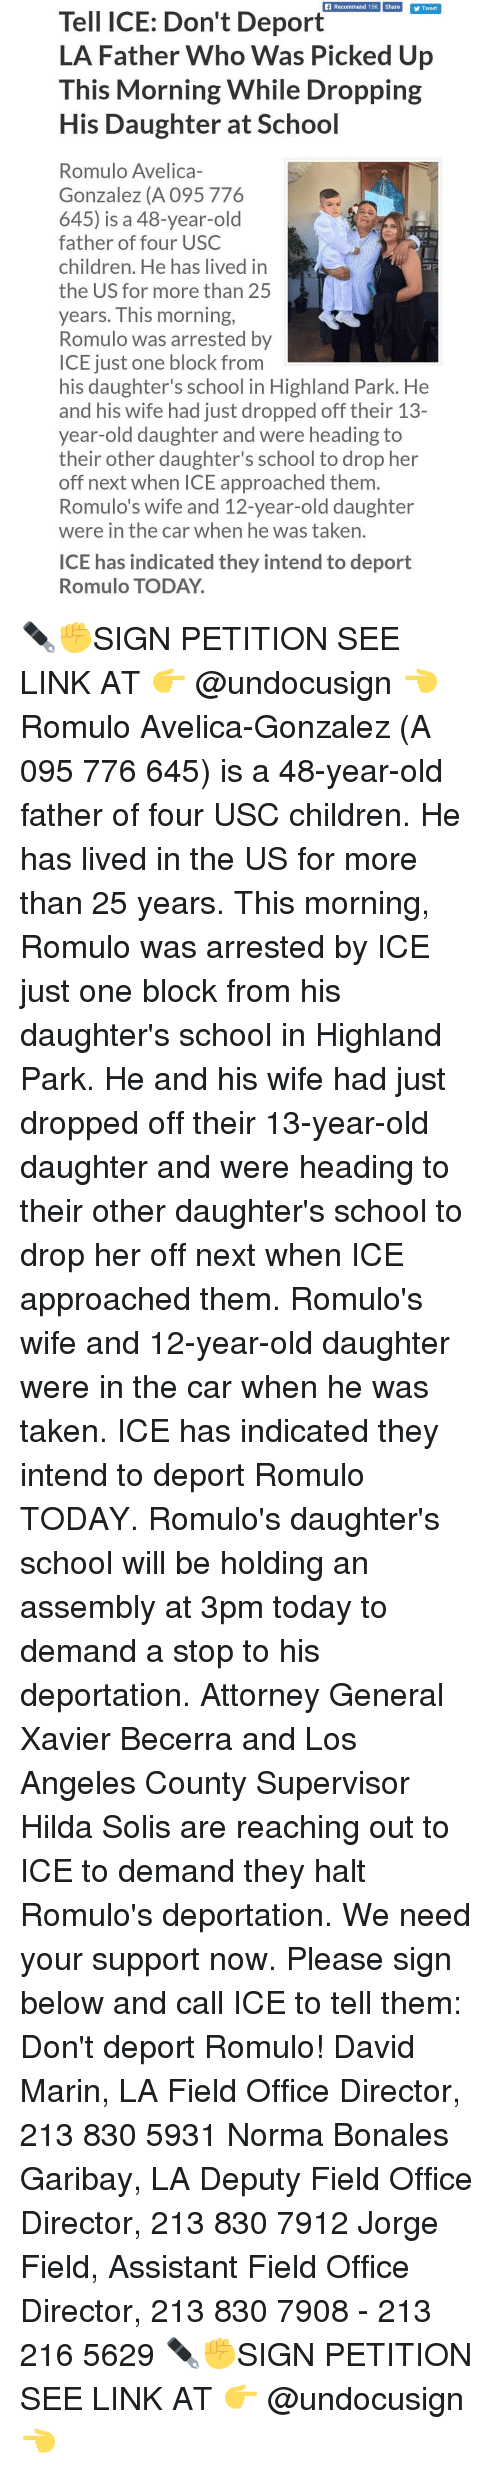 marinate: Recommend 15K Share  Tweet  Tell ICE: Don't Deport  LA Father Who Was Picked Up  This Morning While Dropping  His Daughter at School  Romulo Avelica-  Gonzalez (A 095 776  645) is a 48-year-old  father of four USC  children. He has lived in  the US for more than 25  years. This morning,  Romulo was arrested by  ICE just one block from  his daughter's school in Highland Park. He  and his wife had just dropped off their 13-  year-old daughter and were heading to  their other daughter's school to drop her  off next when ICE approached them  Romulo's wife and 12-year-old daughter  were in the car when he was taken.  ICE has indicated they intend to deport  Romulo TODAY. ✒✊SIGN PETITION SEE LINK AT 👉 @undocusign 👈 Romulo Avelica-Gonzalez (A 095 776 645) is a 48-year-old father of four USC children. He has lived in the US for more than 25 years. This morning, Romulo was arrested by ICE just one block from his daughter's school in Highland Park. He and his wife had just dropped off their 13-year-old daughter and were heading to their other daughter's school to drop her off next when ICE approached them. Romulo's wife and 12-year-old daughter were in the car when he was taken. ICE has indicated they intend to deport Romulo TODAY. Romulo's daughter's school will be holding an assembly at 3pm today to demand a stop to his deportation. Attorney General Xavier Becerra and Los Angeles County Supervisor Hilda Solis are reaching out to ICE to demand they halt Romulo's deportation. We need your support now. Please sign below and call ICE to tell them: Don't deport Romulo! David Marin, LA Field Office Director, 213 830 5931 Norma Bonales Garibay, LA Deputy Field Office Director, 213 830 7912 Jorge Field, Assistant Field Office Director, 213 830 7908 - 213 216 5629 ✒✊SIGN PETITION SEE LINK AT 👉 @undocusign 👈